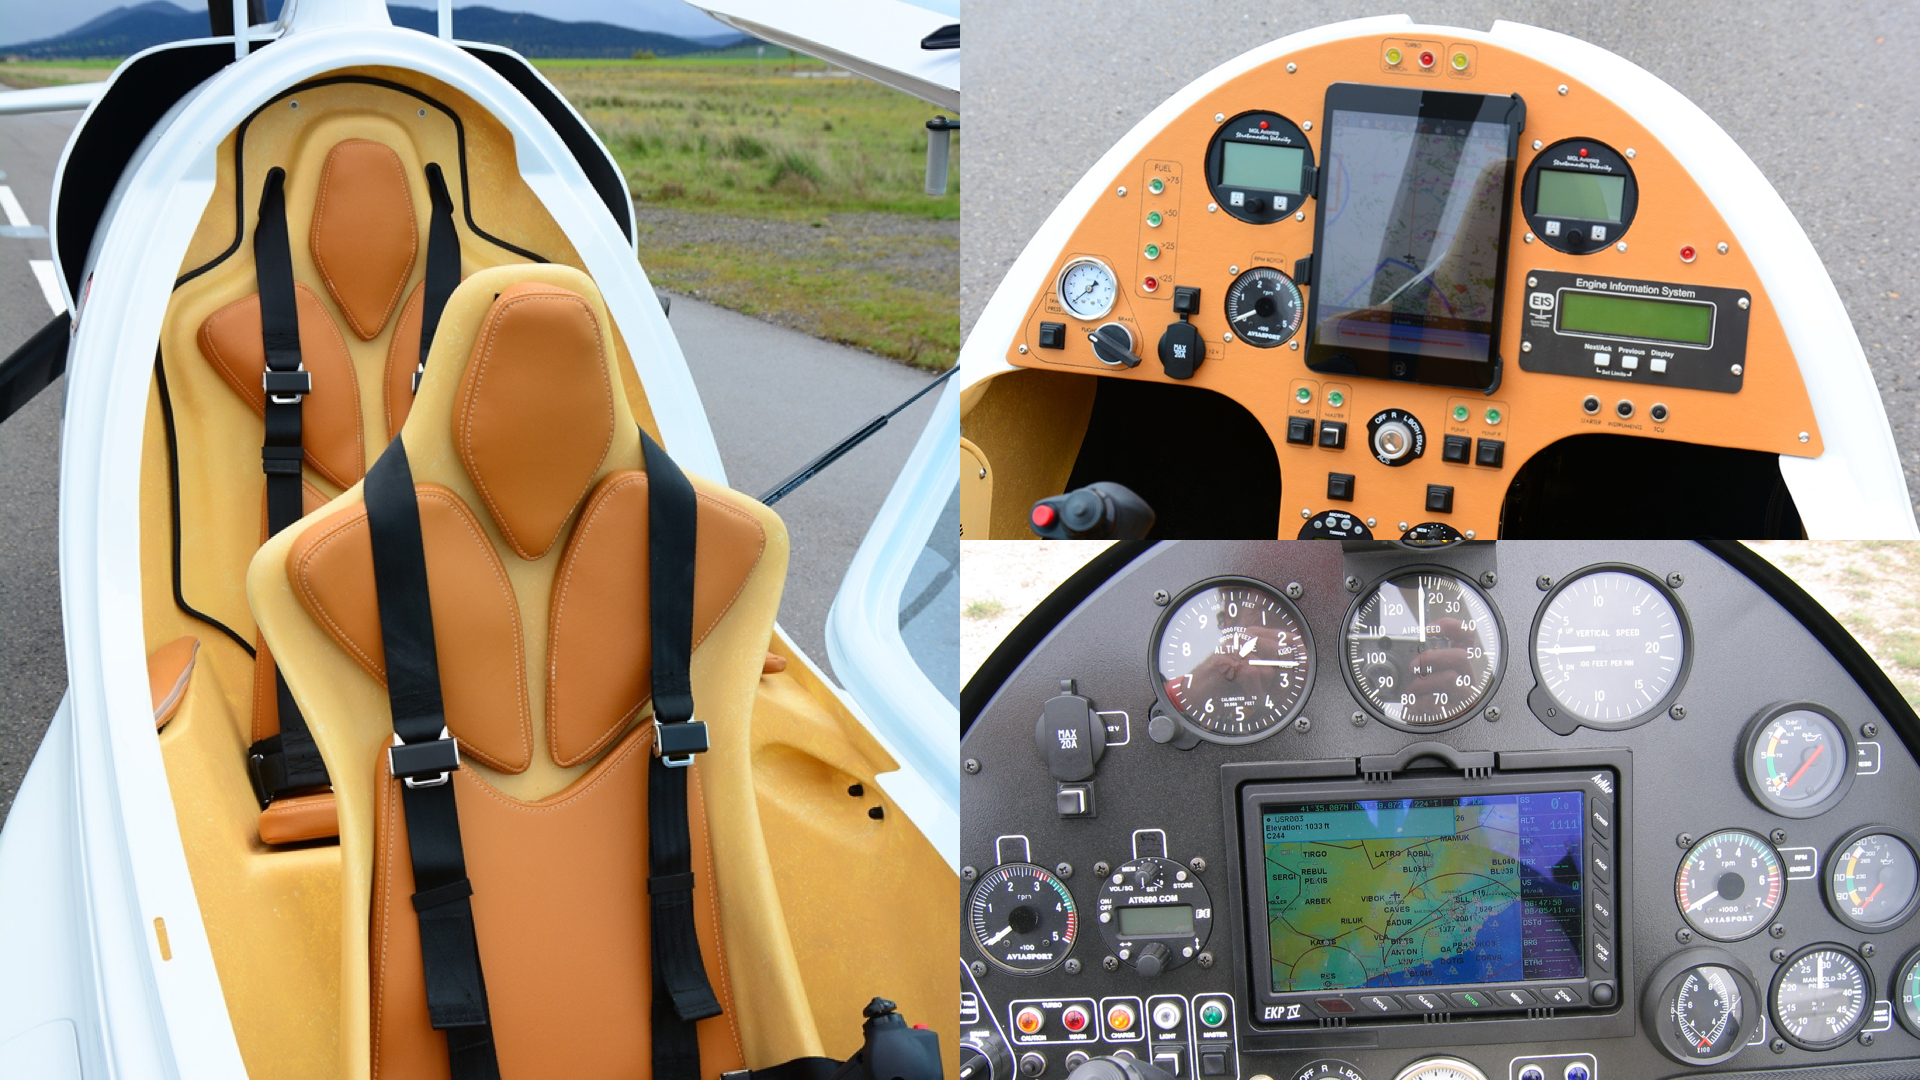 gyrocopter girodynamics ela 10 eclipse instruments and features beautiful autogyro